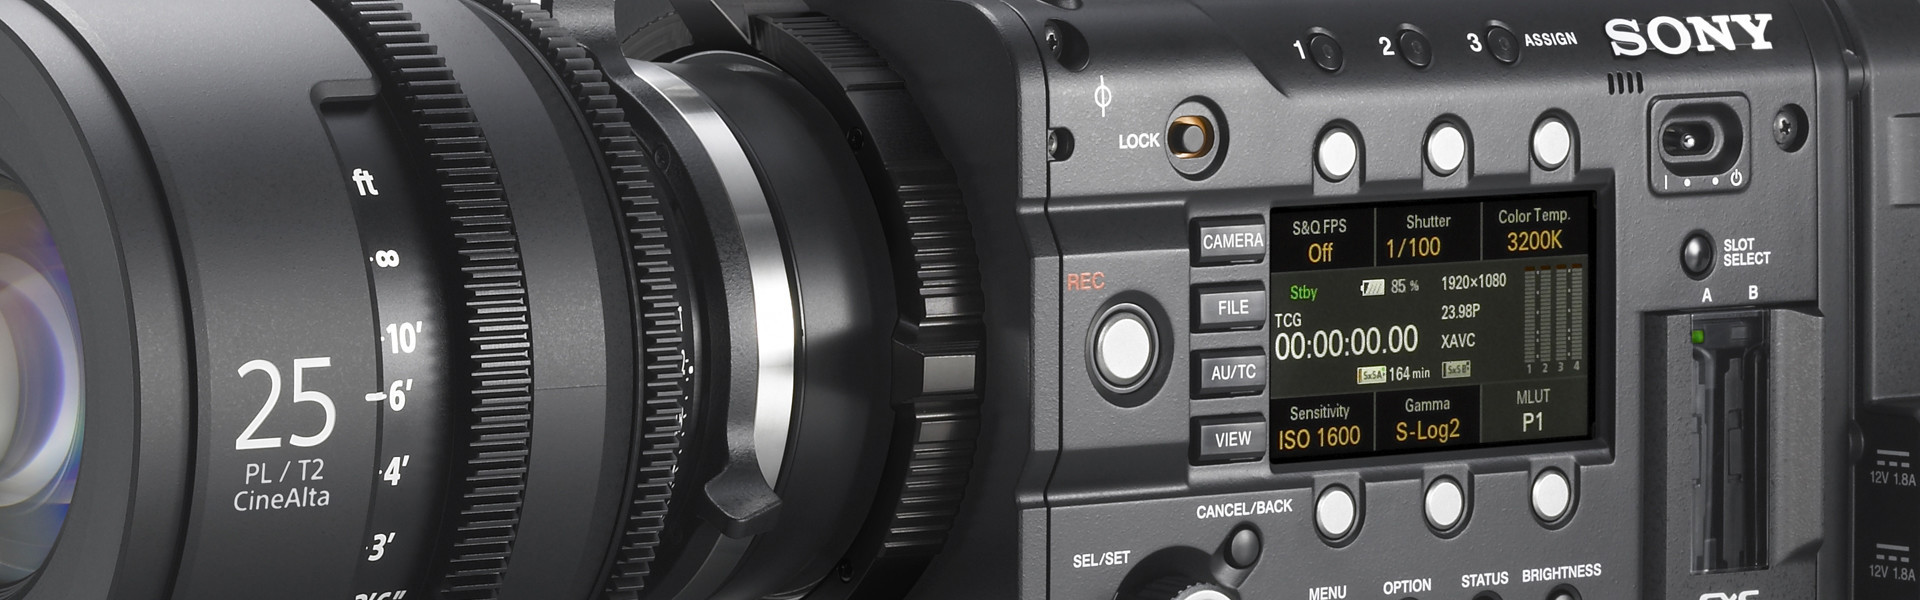 Header image for article At the Bench: Arri Accessories for the Sony F5/F55